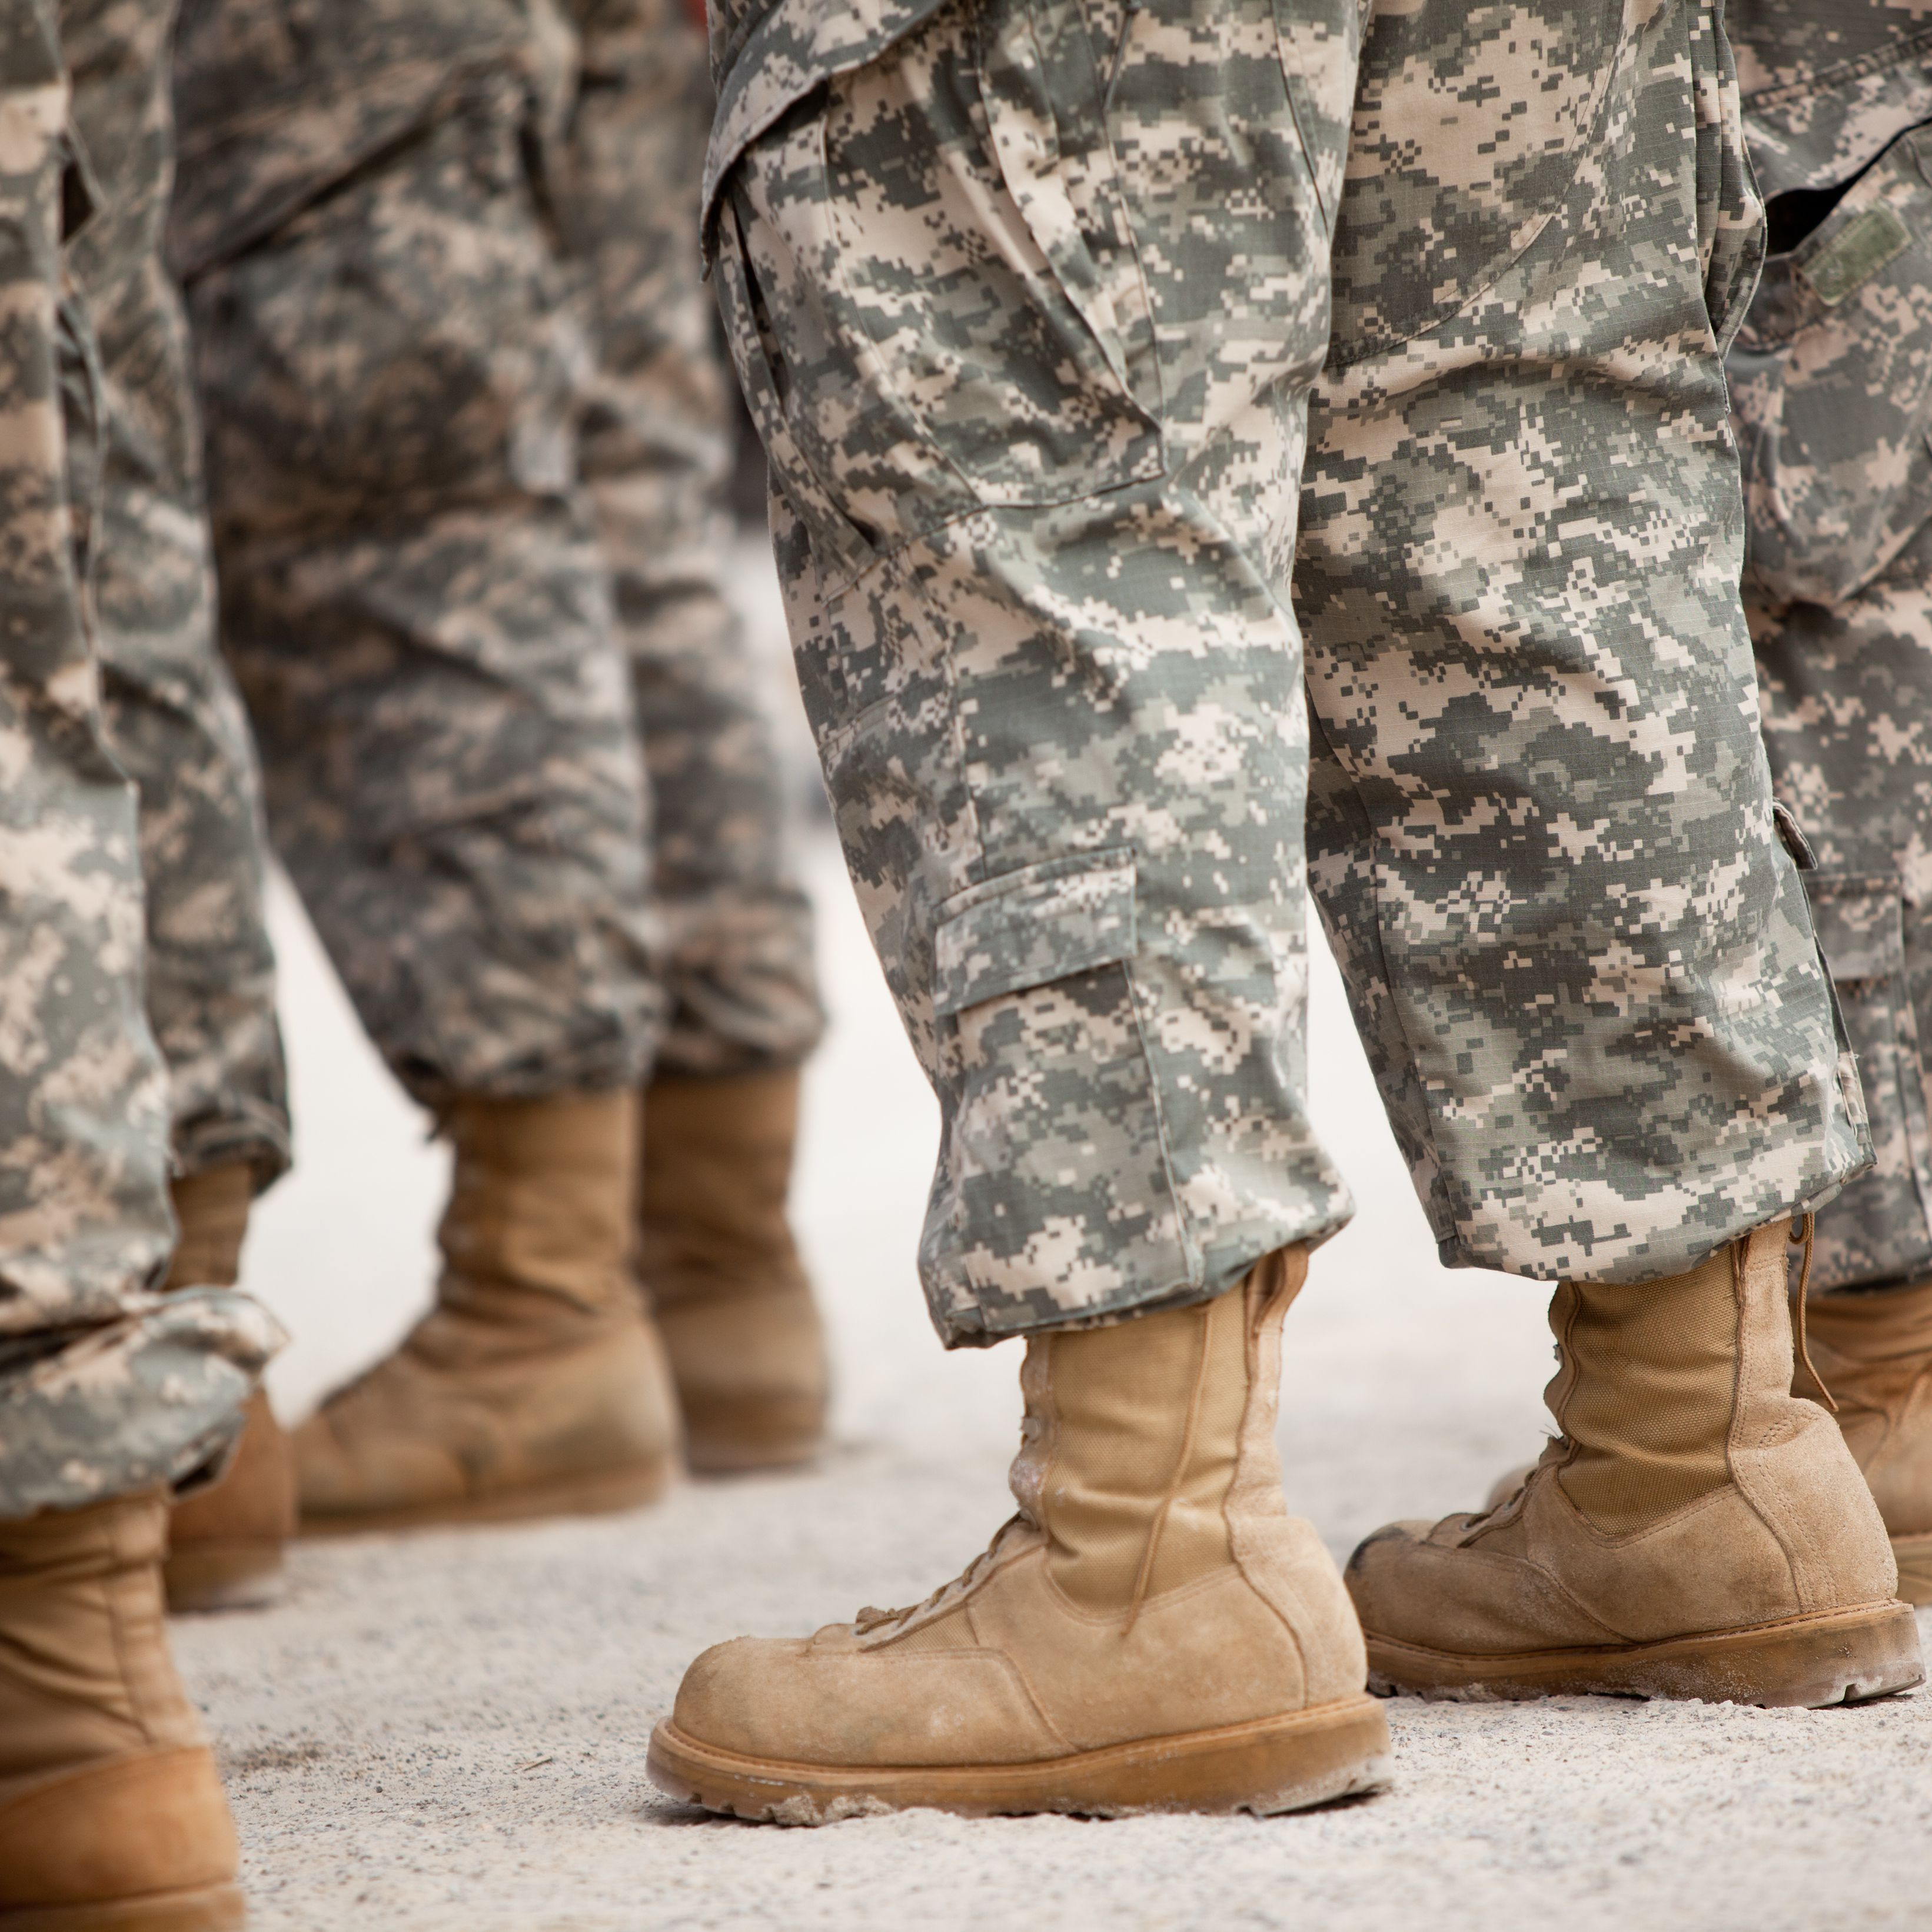 How to Wash Military Combat Uniforms